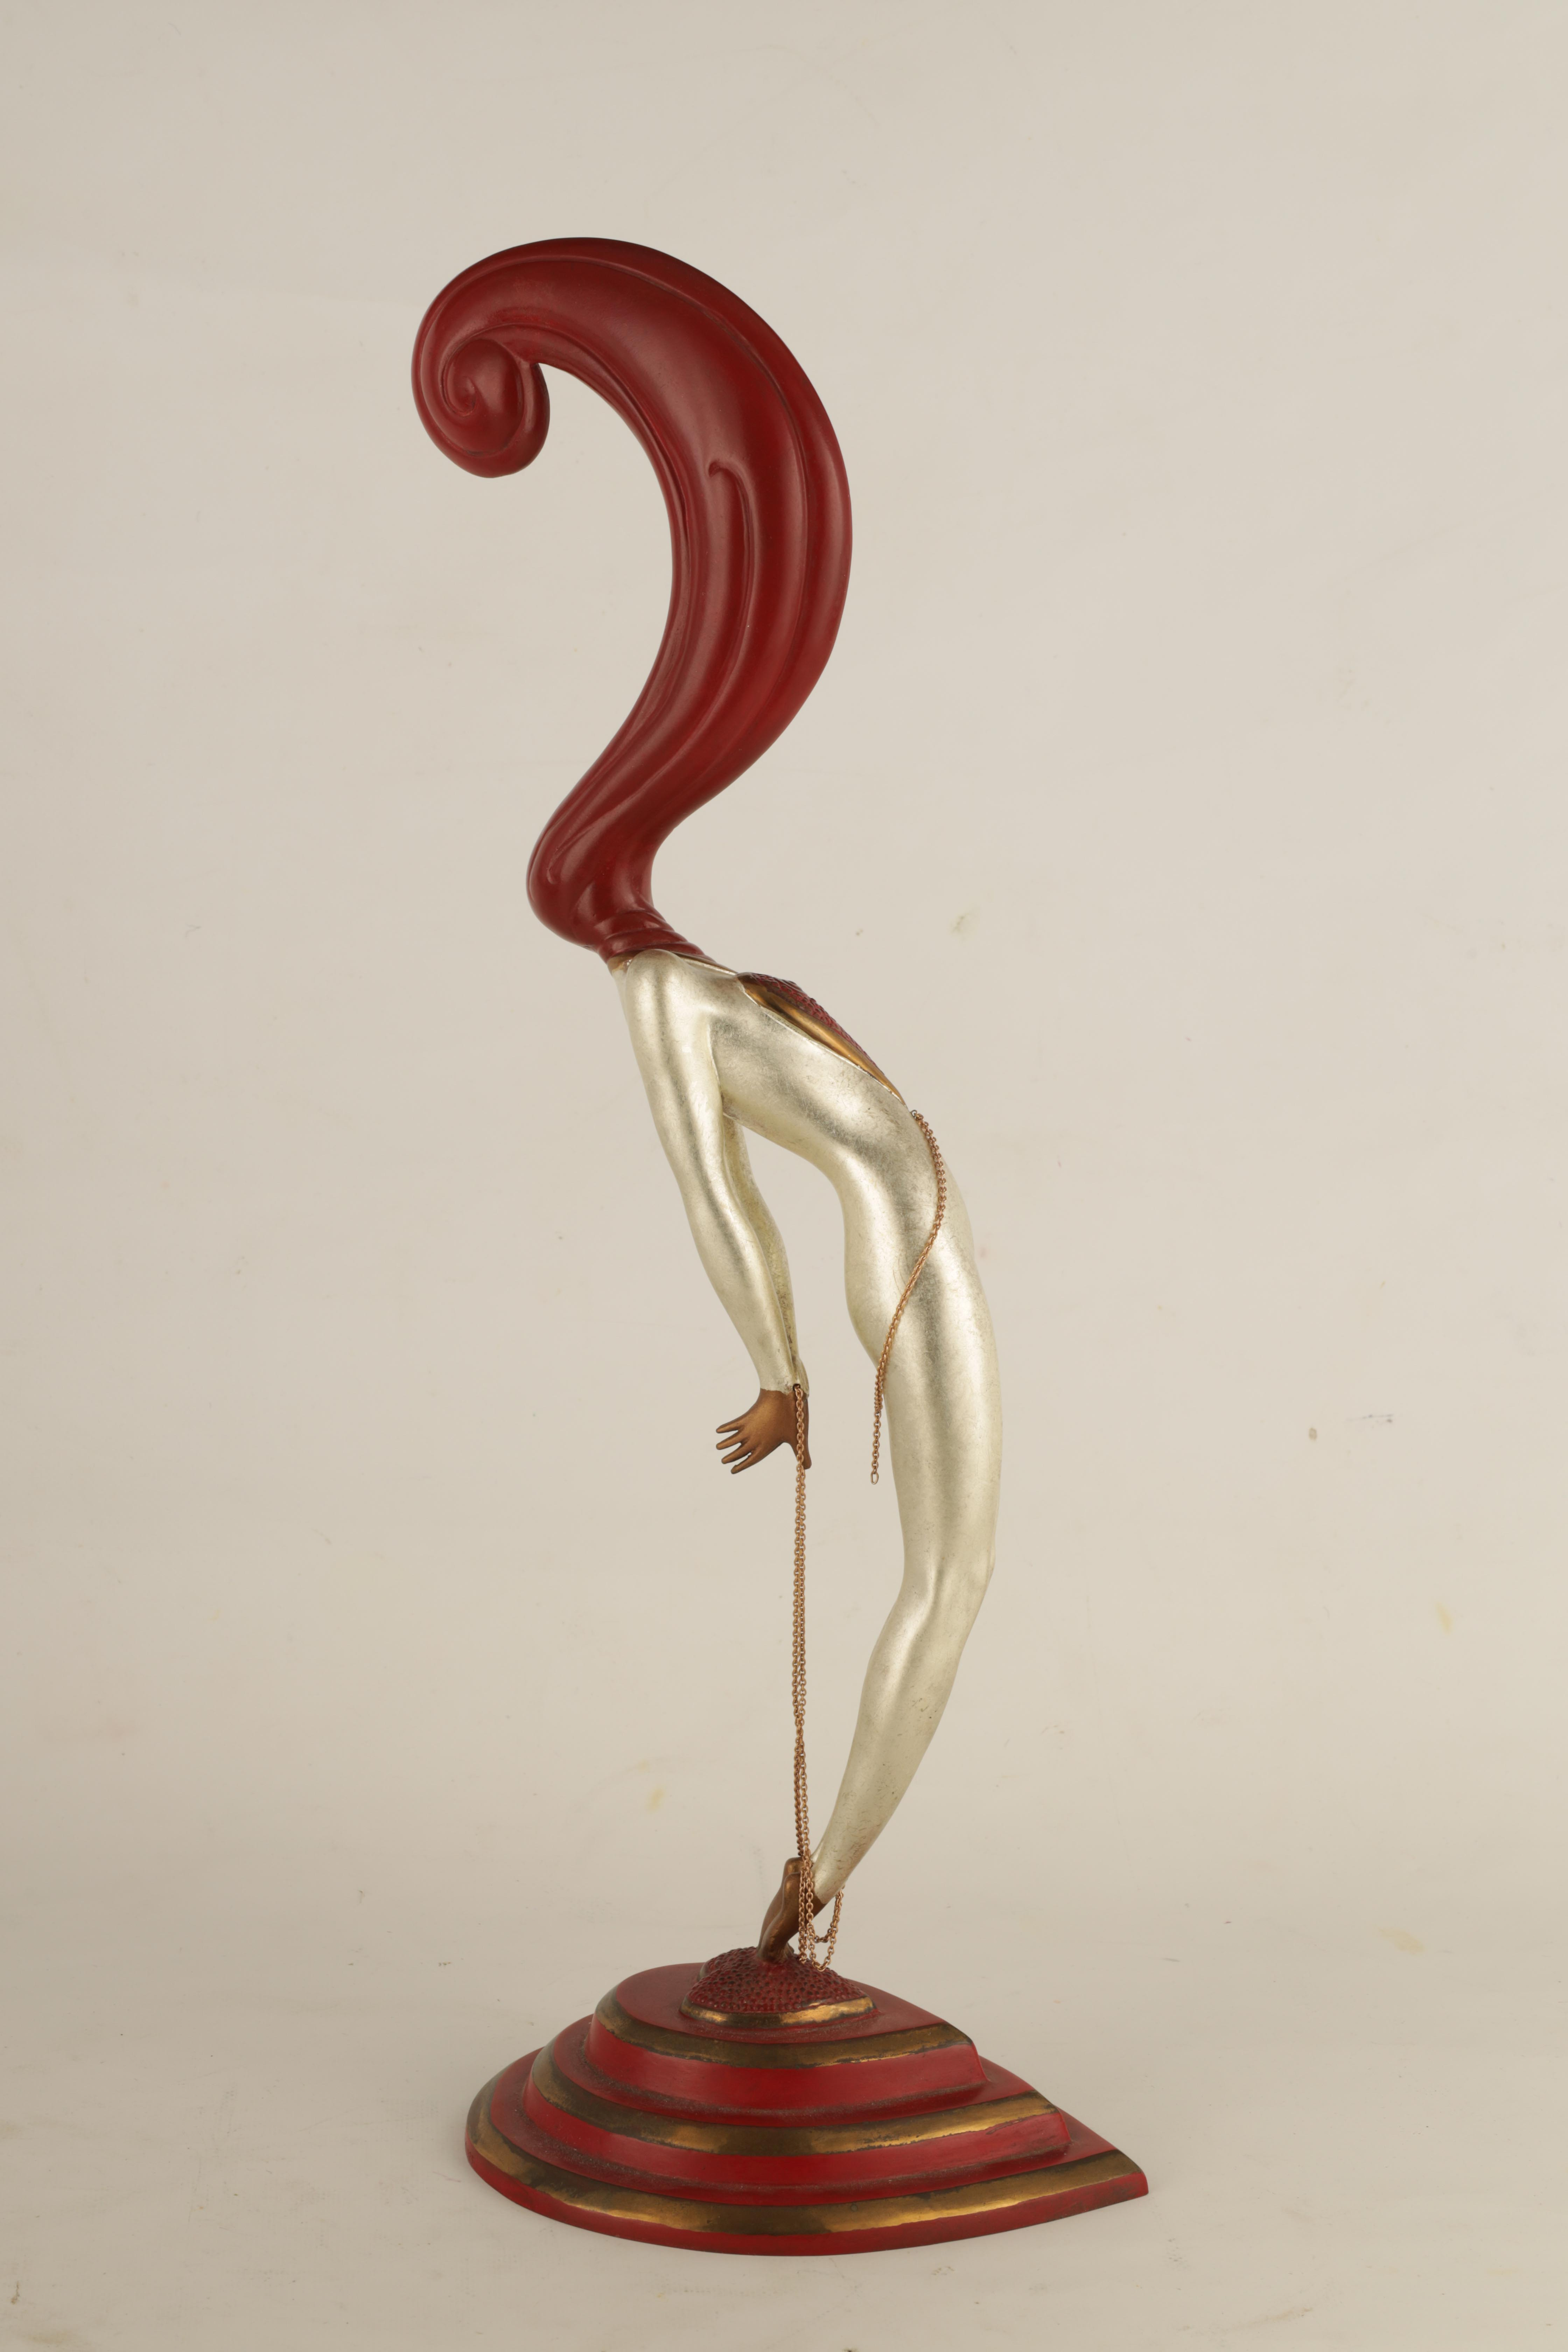 ROMAIN DE TIRTOFF. RUSSIAN 1892-1990. A 20TH CENTURY RUSSIAN LIMITED EDITION COLD PAINTED BRONZE - Image 6 of 11